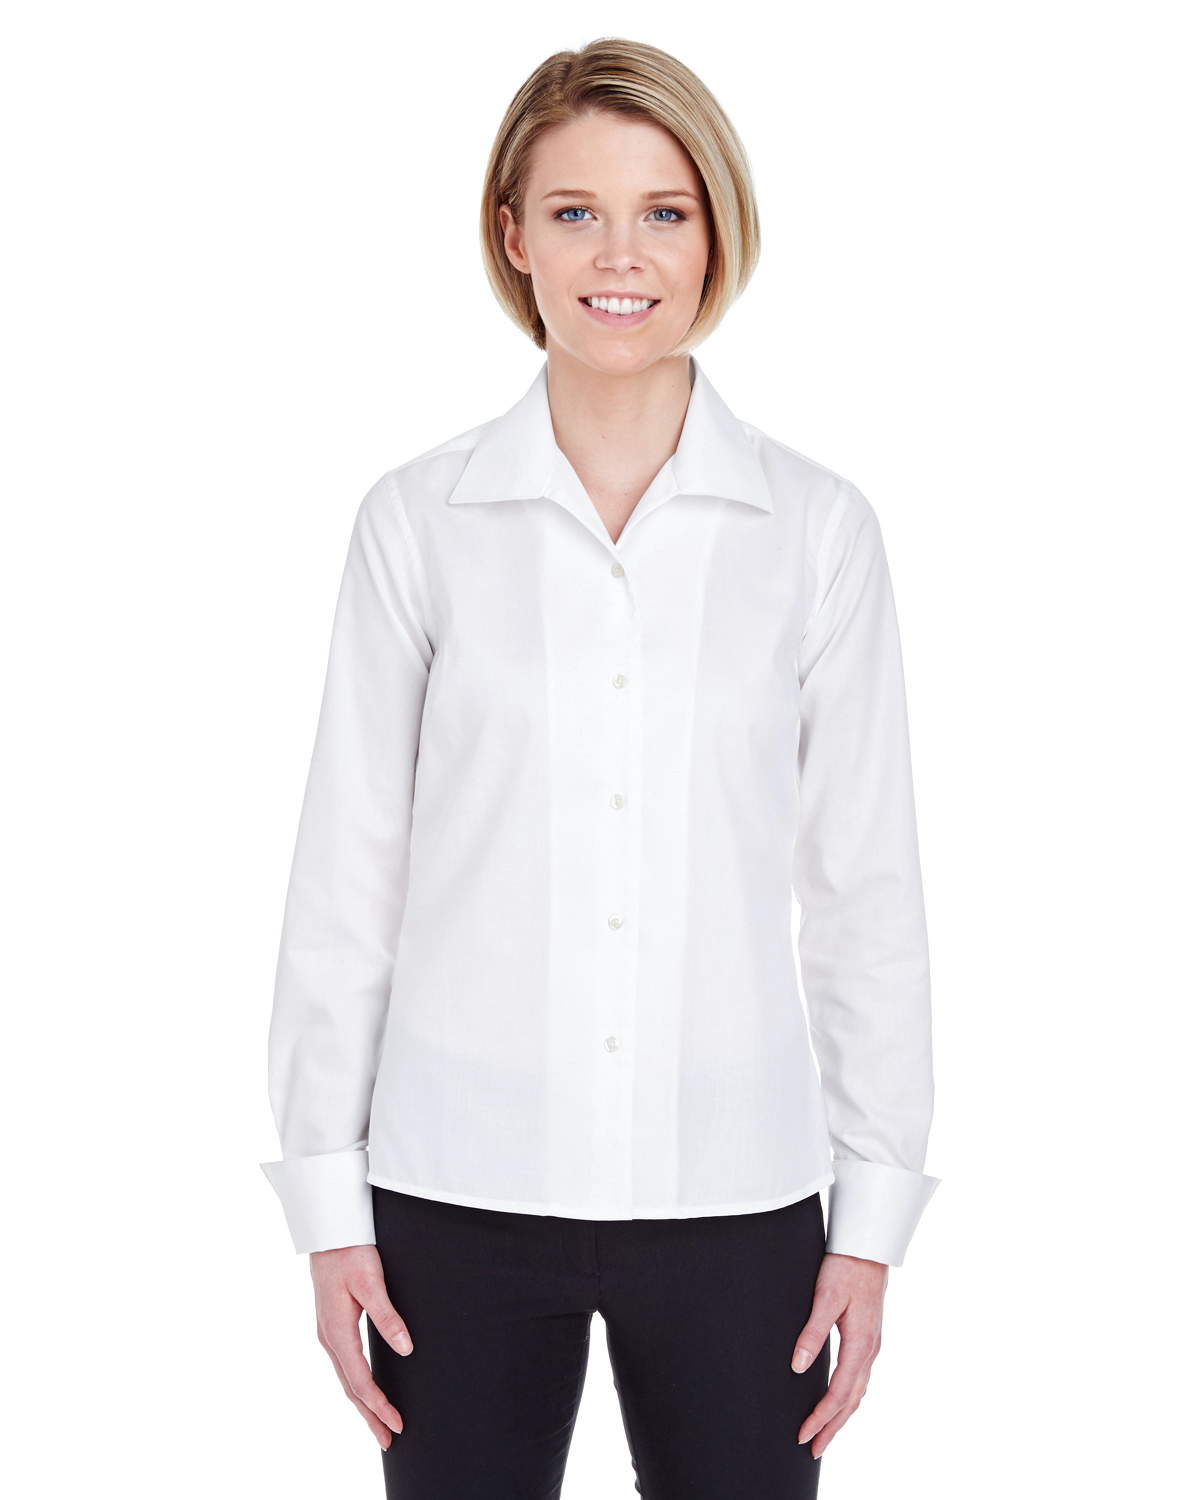 8992 UltraClub Ladies' Whisper Elite Twill Shirt